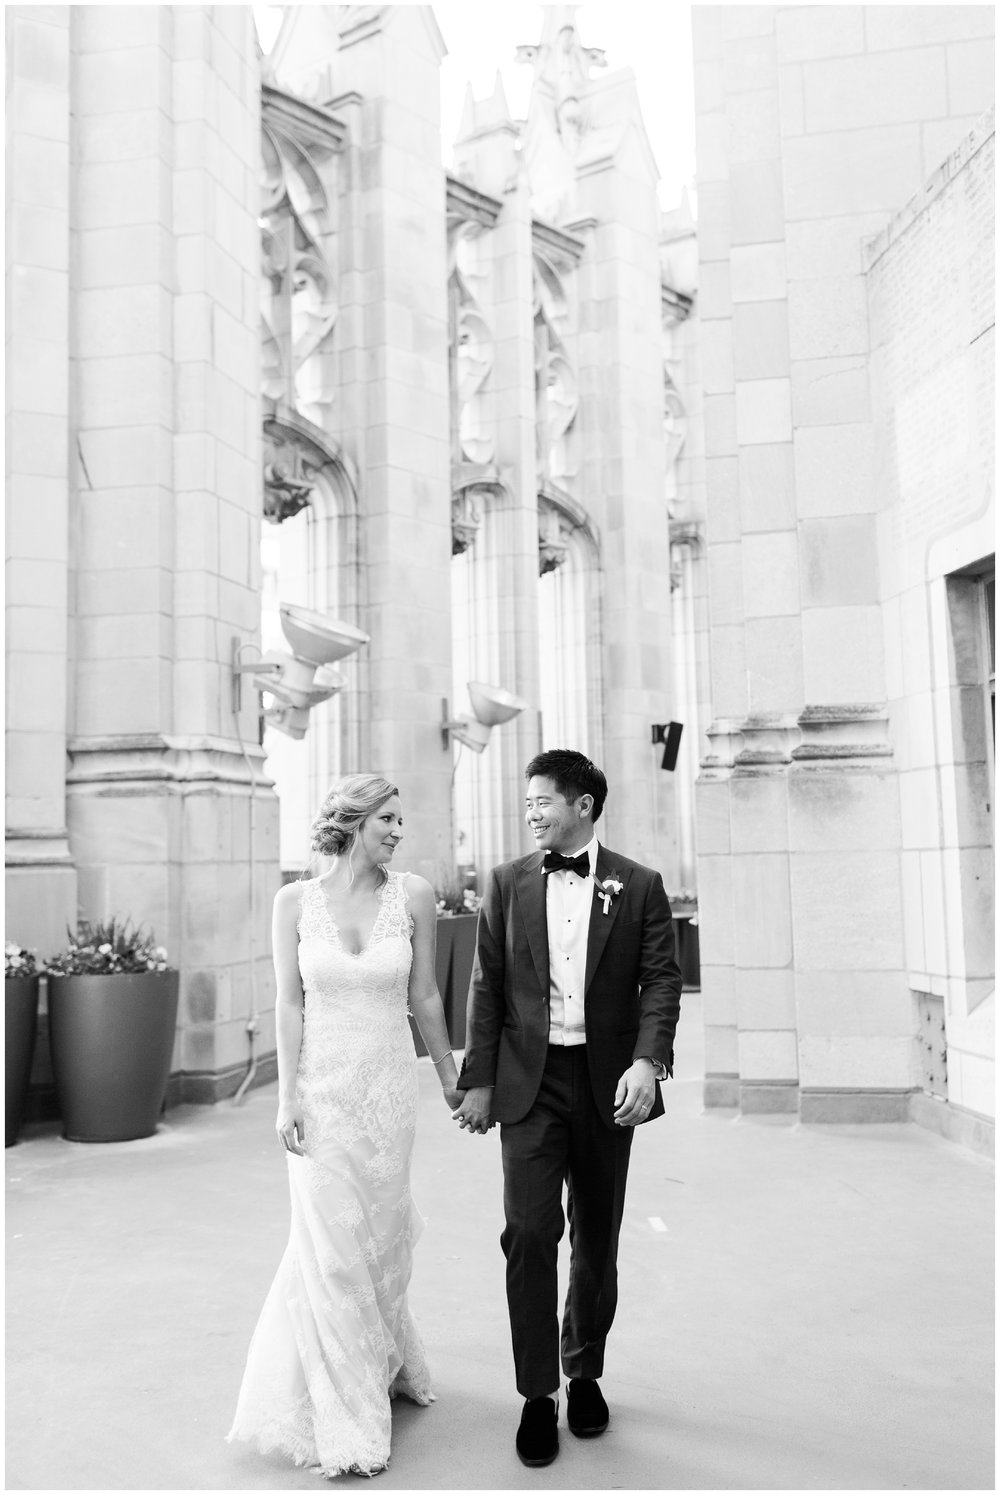 RebeccaHaleyPhotography_Denverweddingphotographer_Denverbride_coloradobride_chicagobride_chicagowedding_tribunetowerwedding_chicagoweddingphotographer_0091.jpg